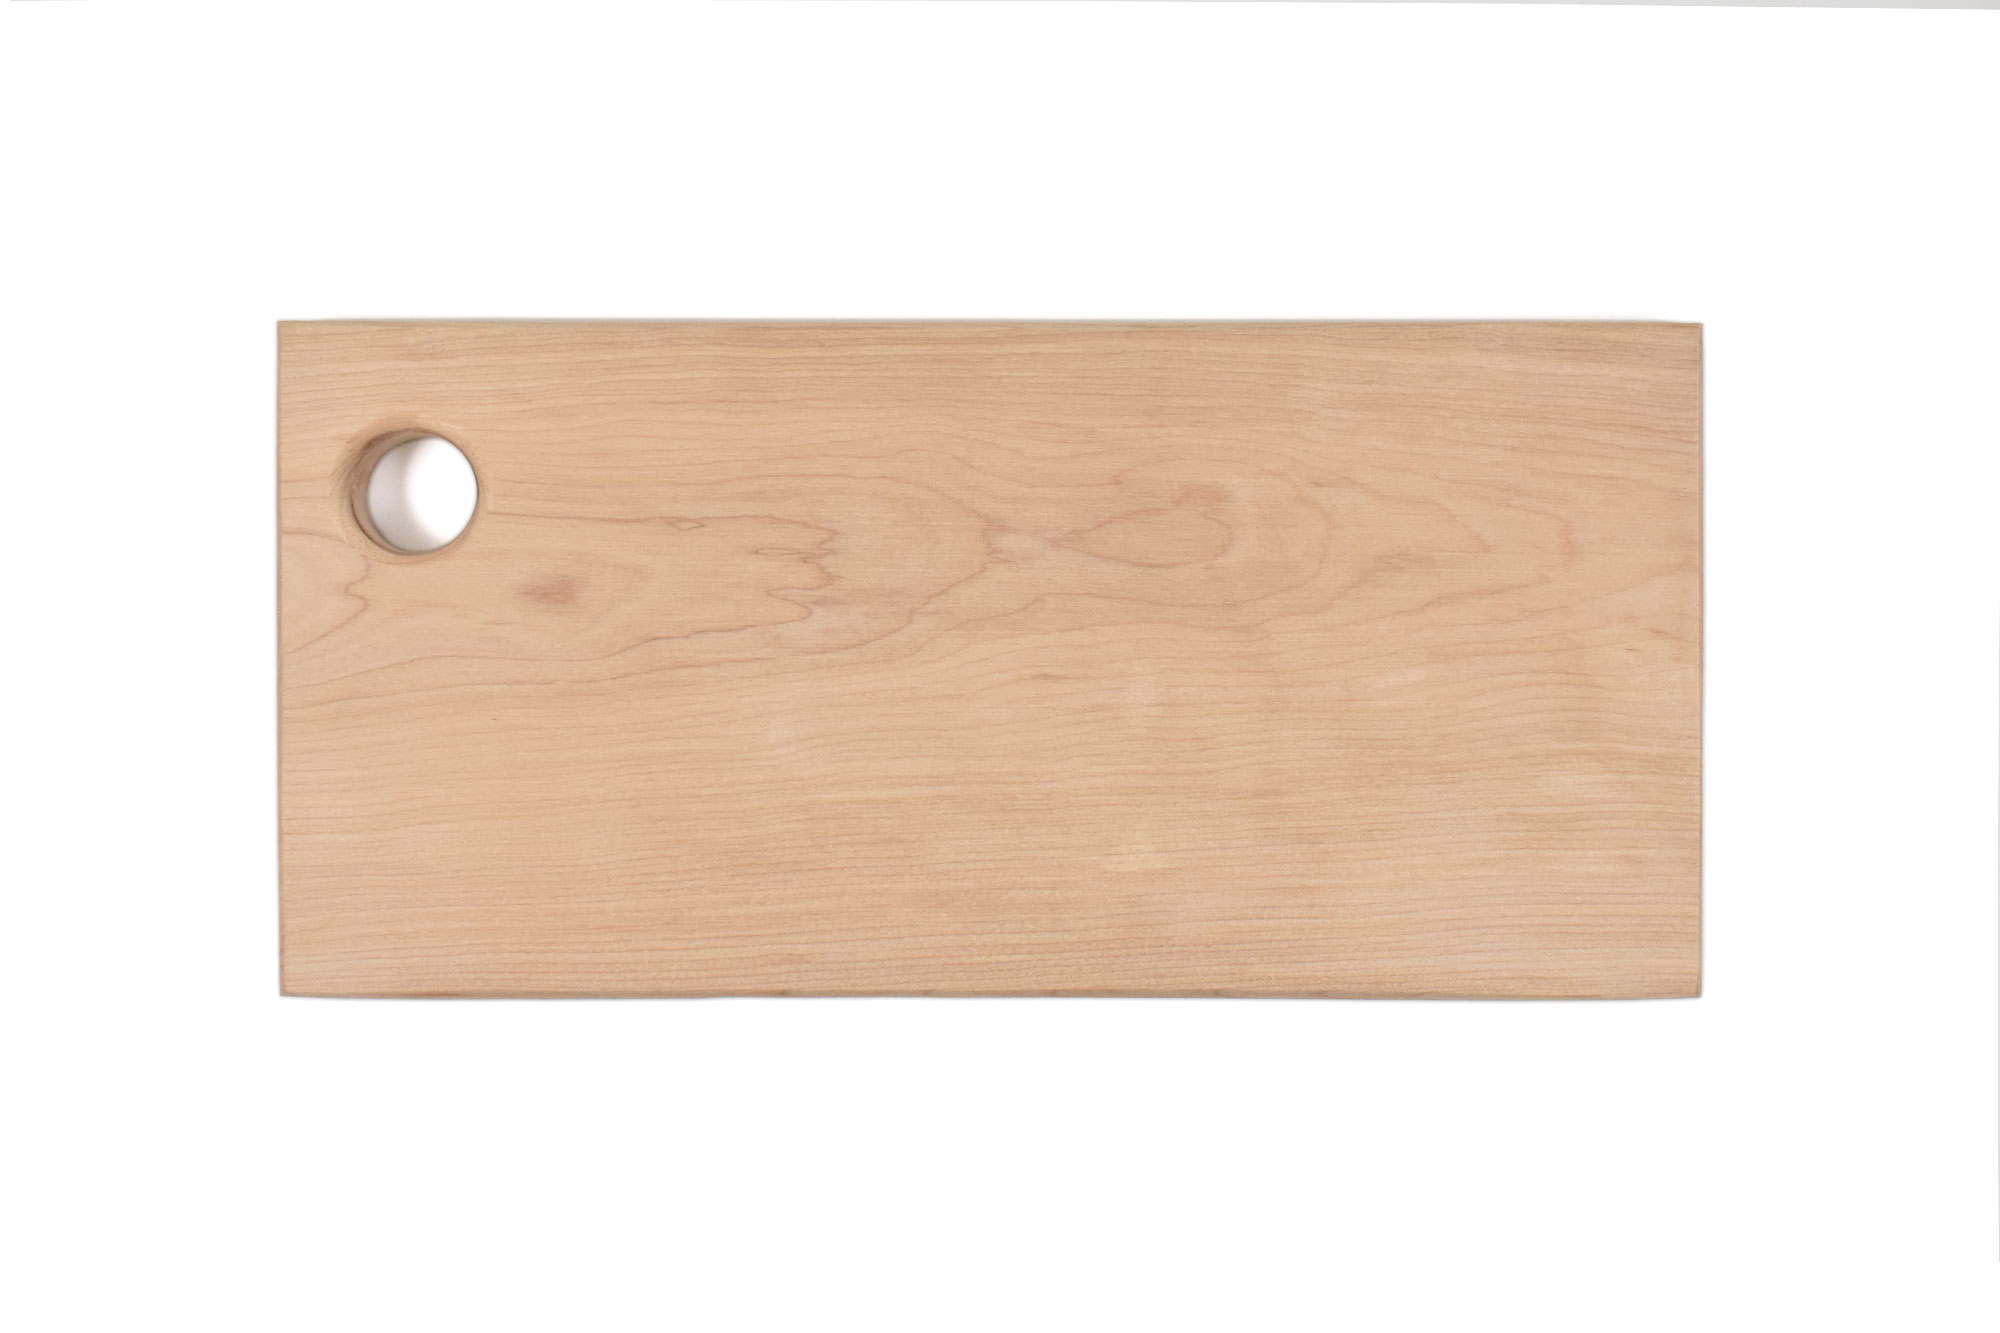 Artisan Yellow Birch wood cutting board with hole